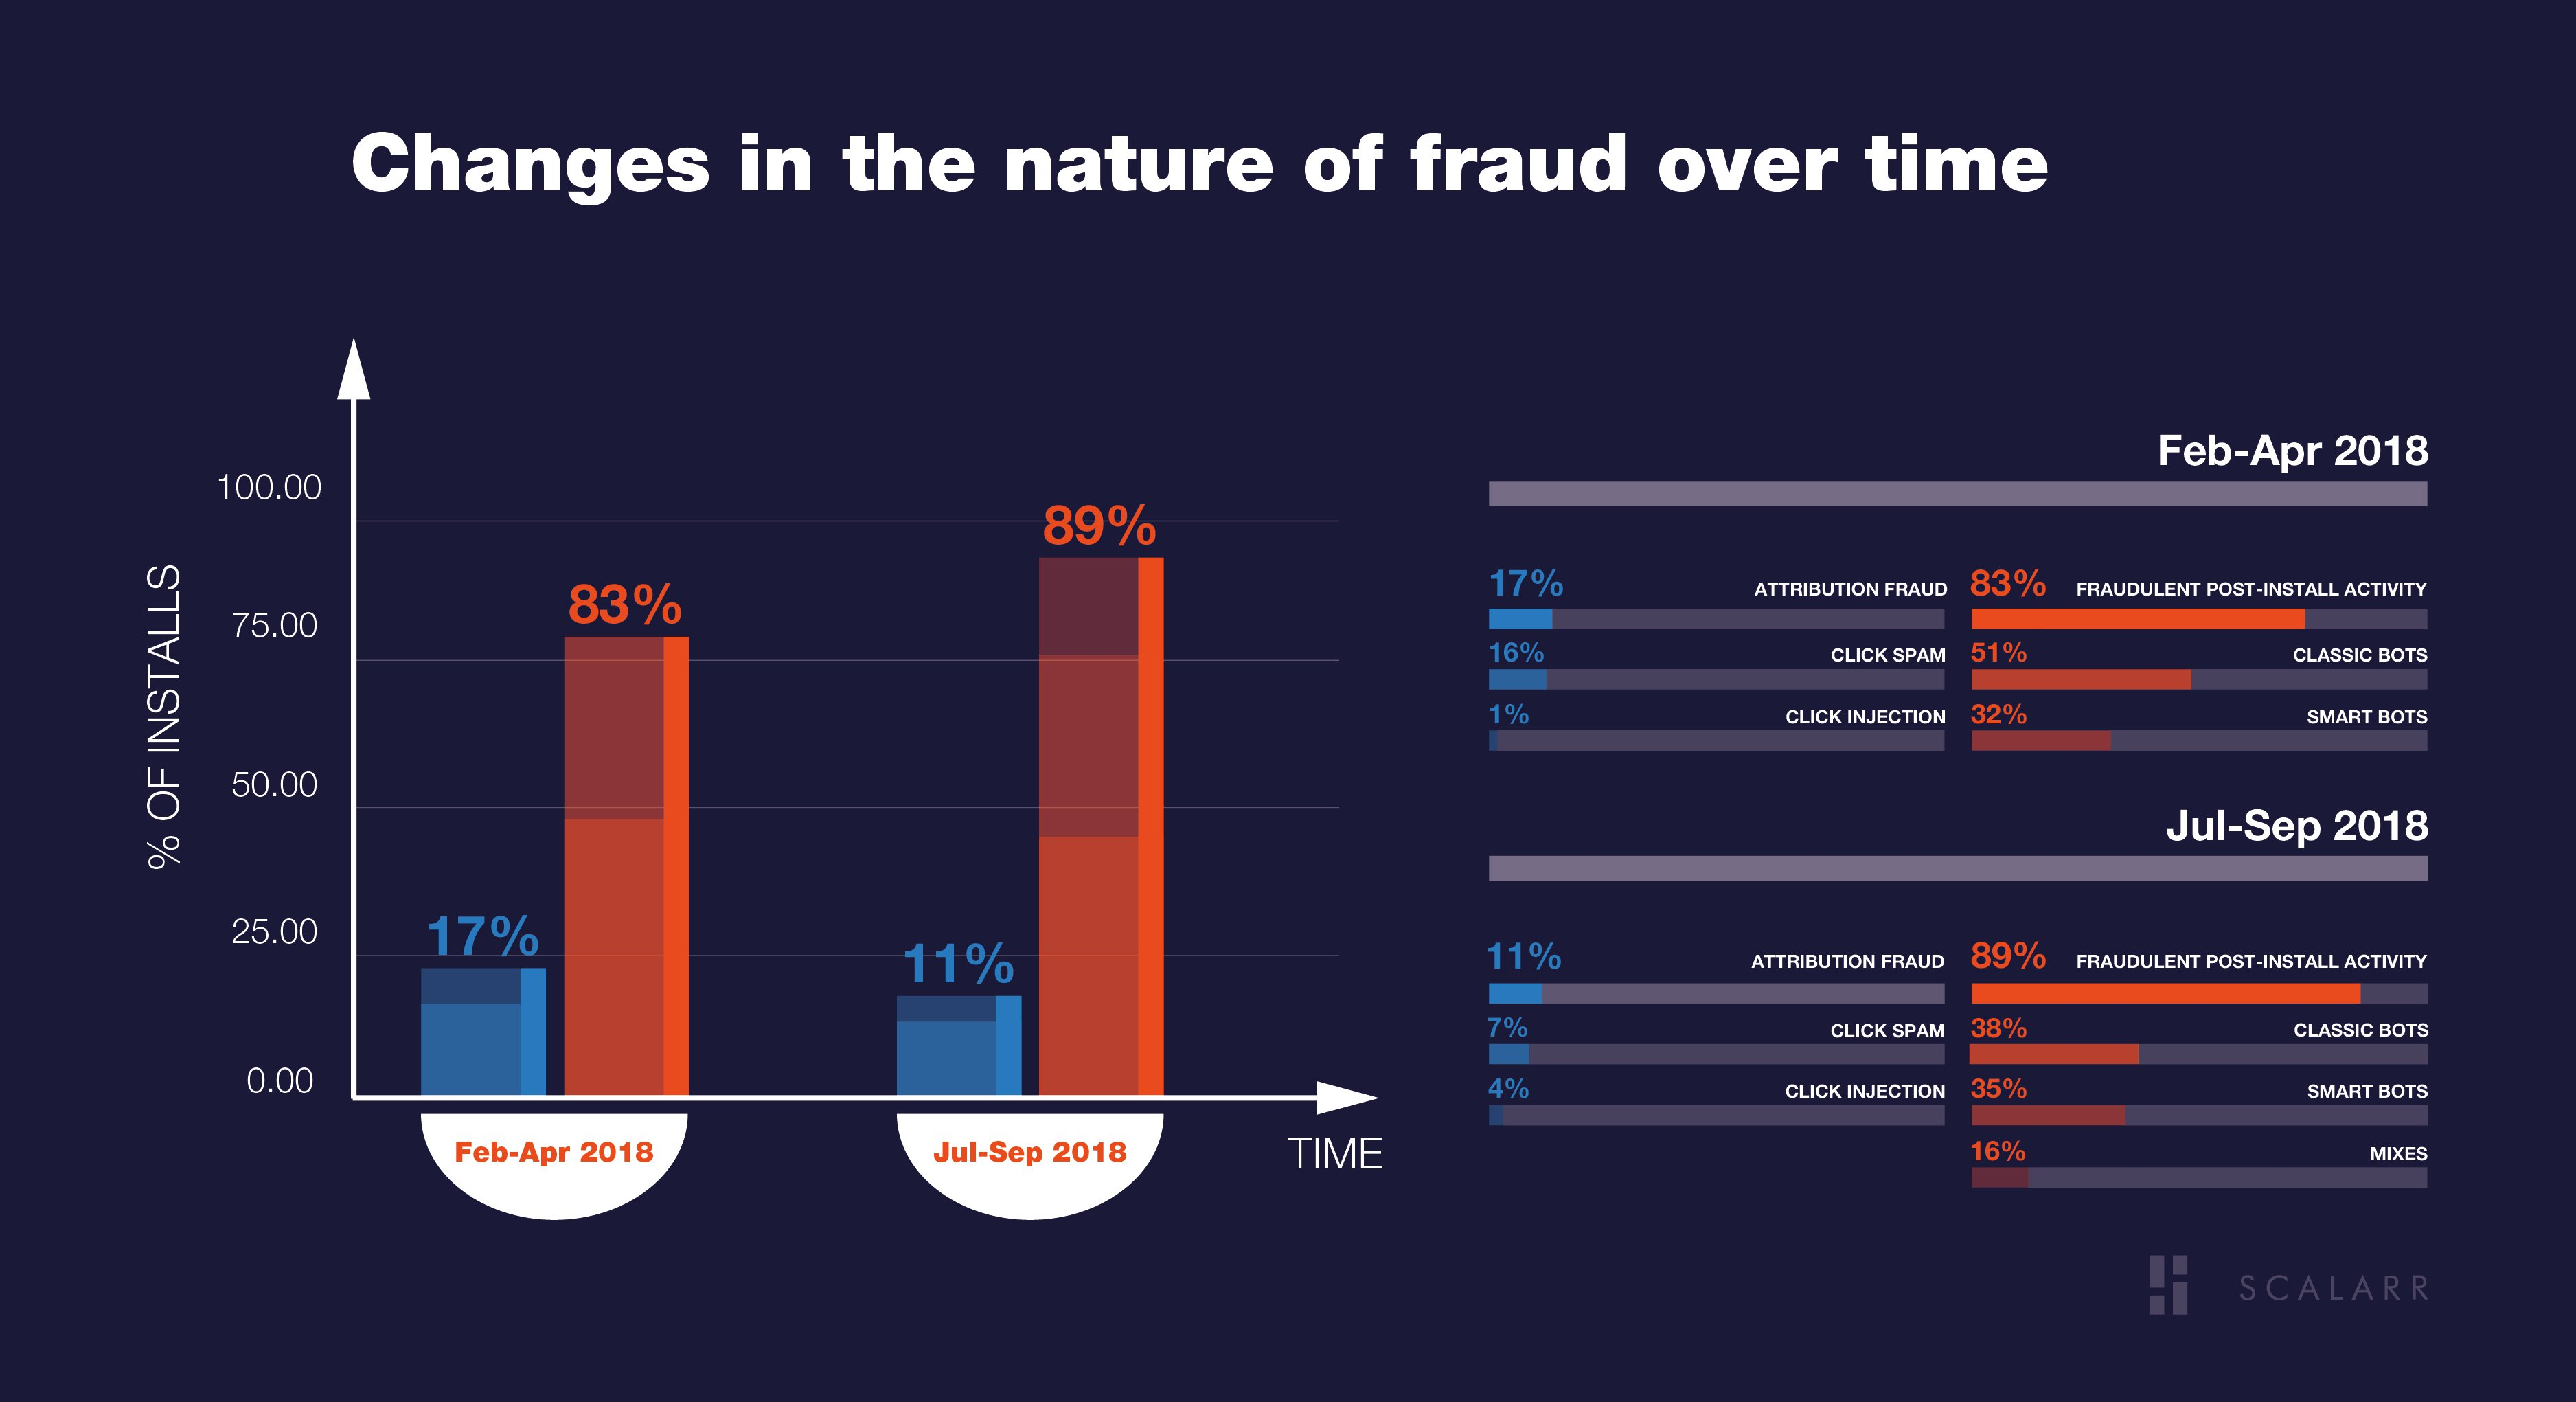 Changes in the nature of fraud over time